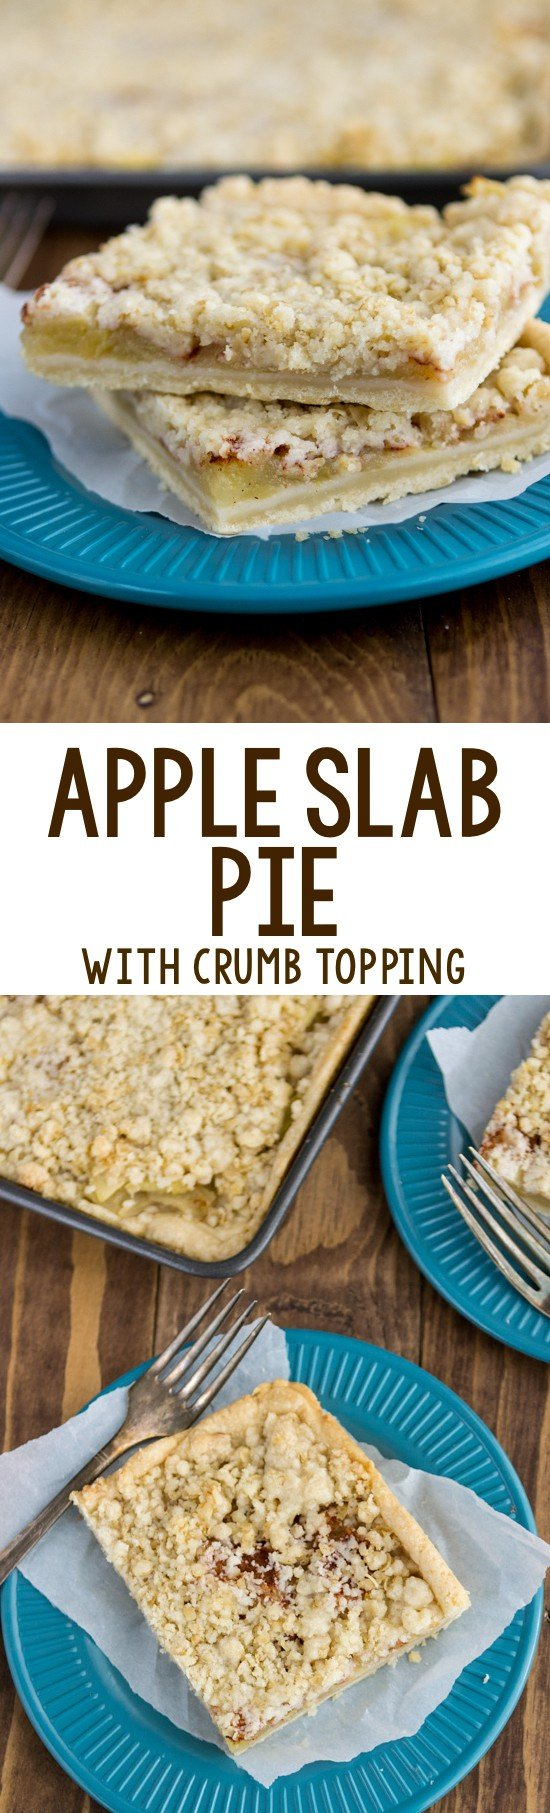 Apple Slab Pie with crumble topping on a blue plate collage